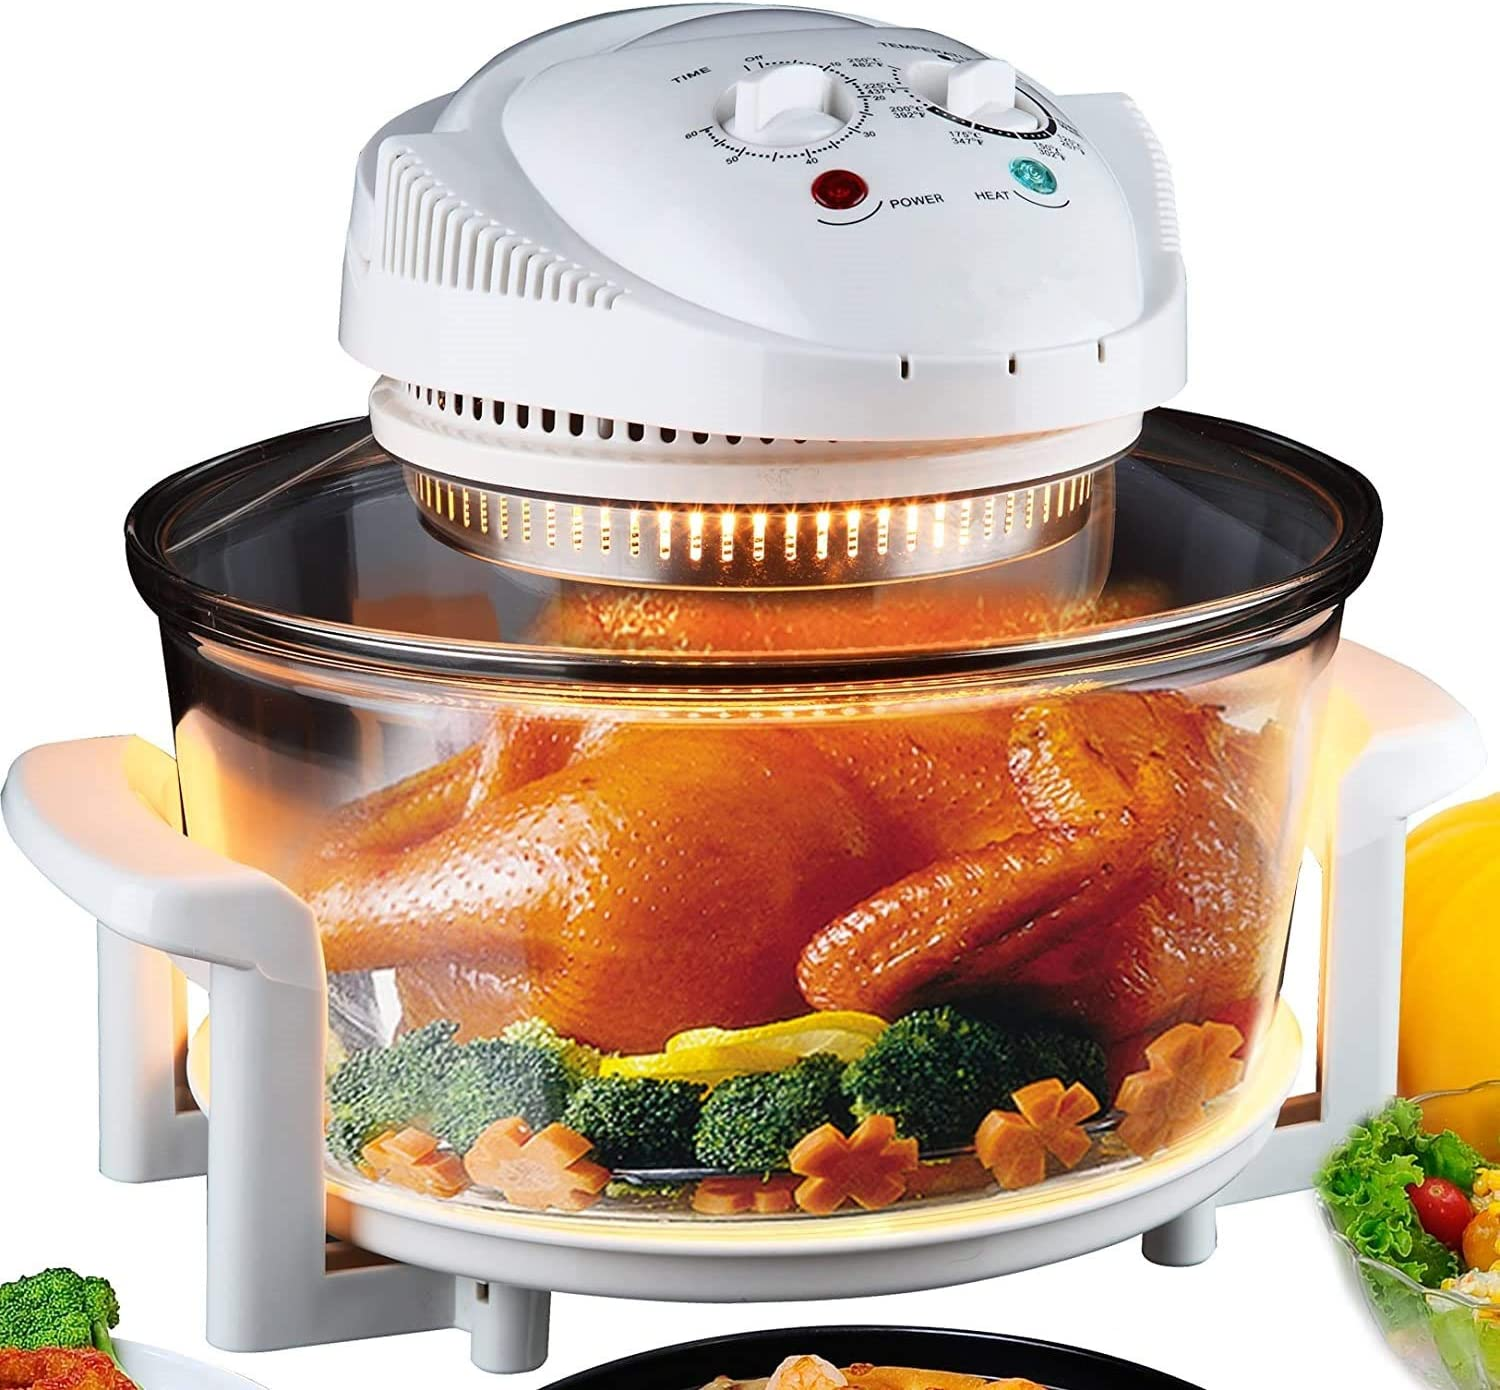 Electric Air Fryer Turbo Free Shipping New Arlington Mall Convection Oven Halogen Roaster Steamer